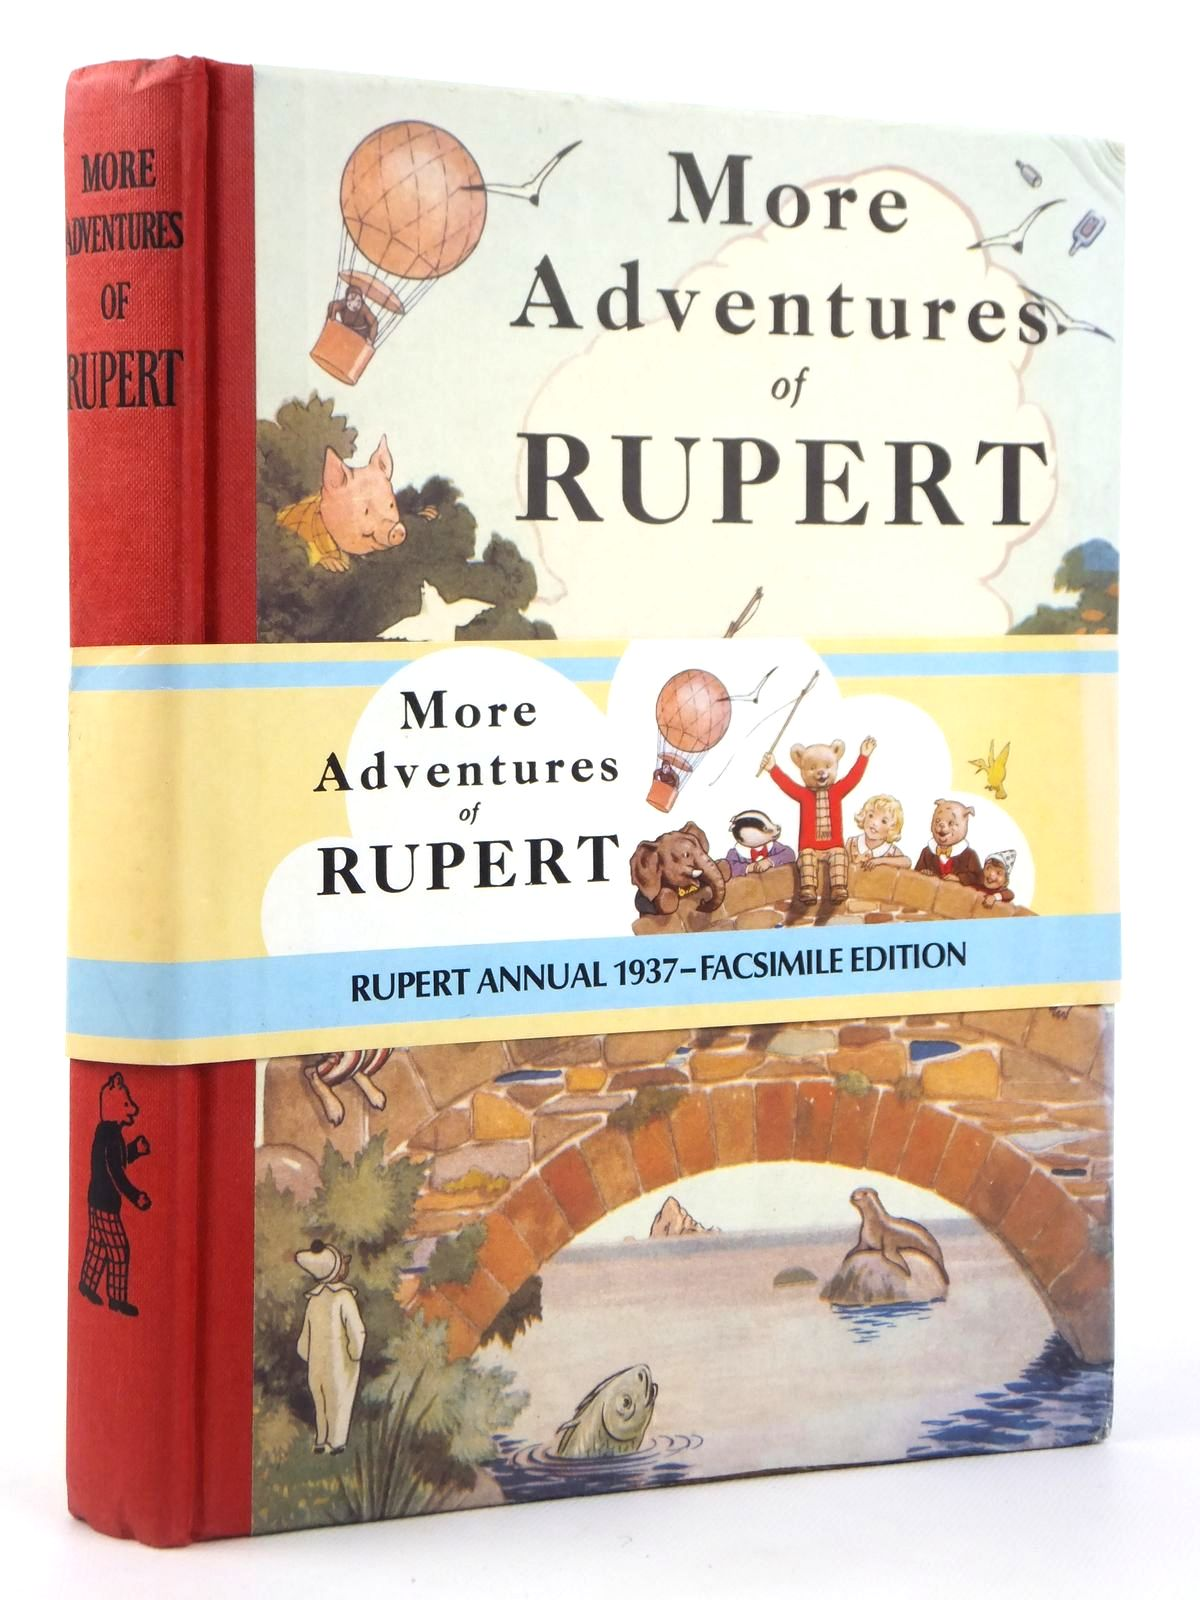 Photo of RUPERT ANNUAL 1937 (FACSIMILE) - MORE ADVENTURES OF RUPERT written by Bestall, Alfred illustrated by Bestall, Alfred published by Express Newspapers Ltd. (STOCK CODE: 2122195)  for sale by Stella & Rose's Books